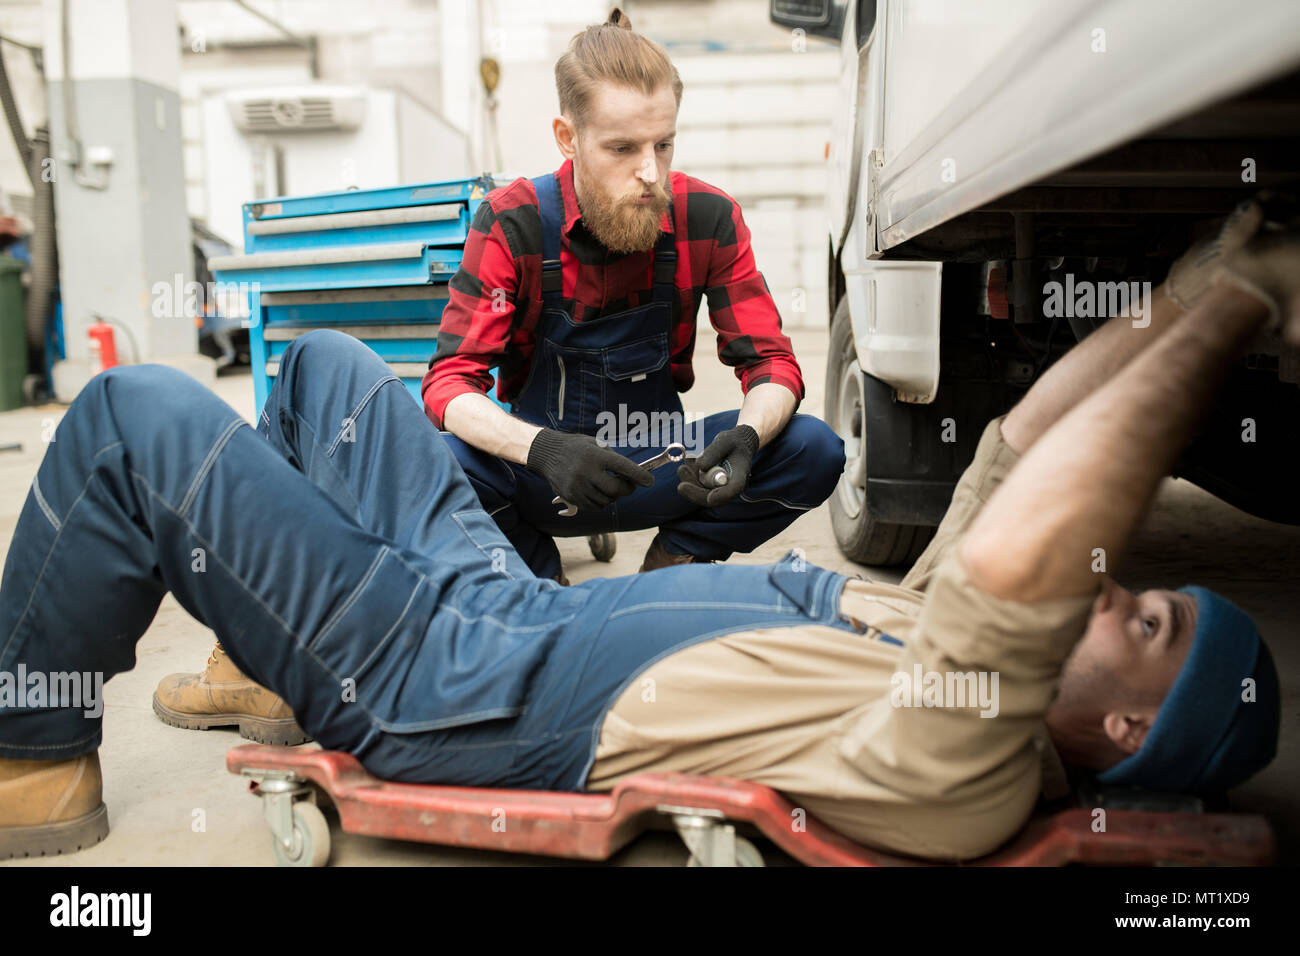 Mechanics Repairing Vehicle In Garage - Stock Image